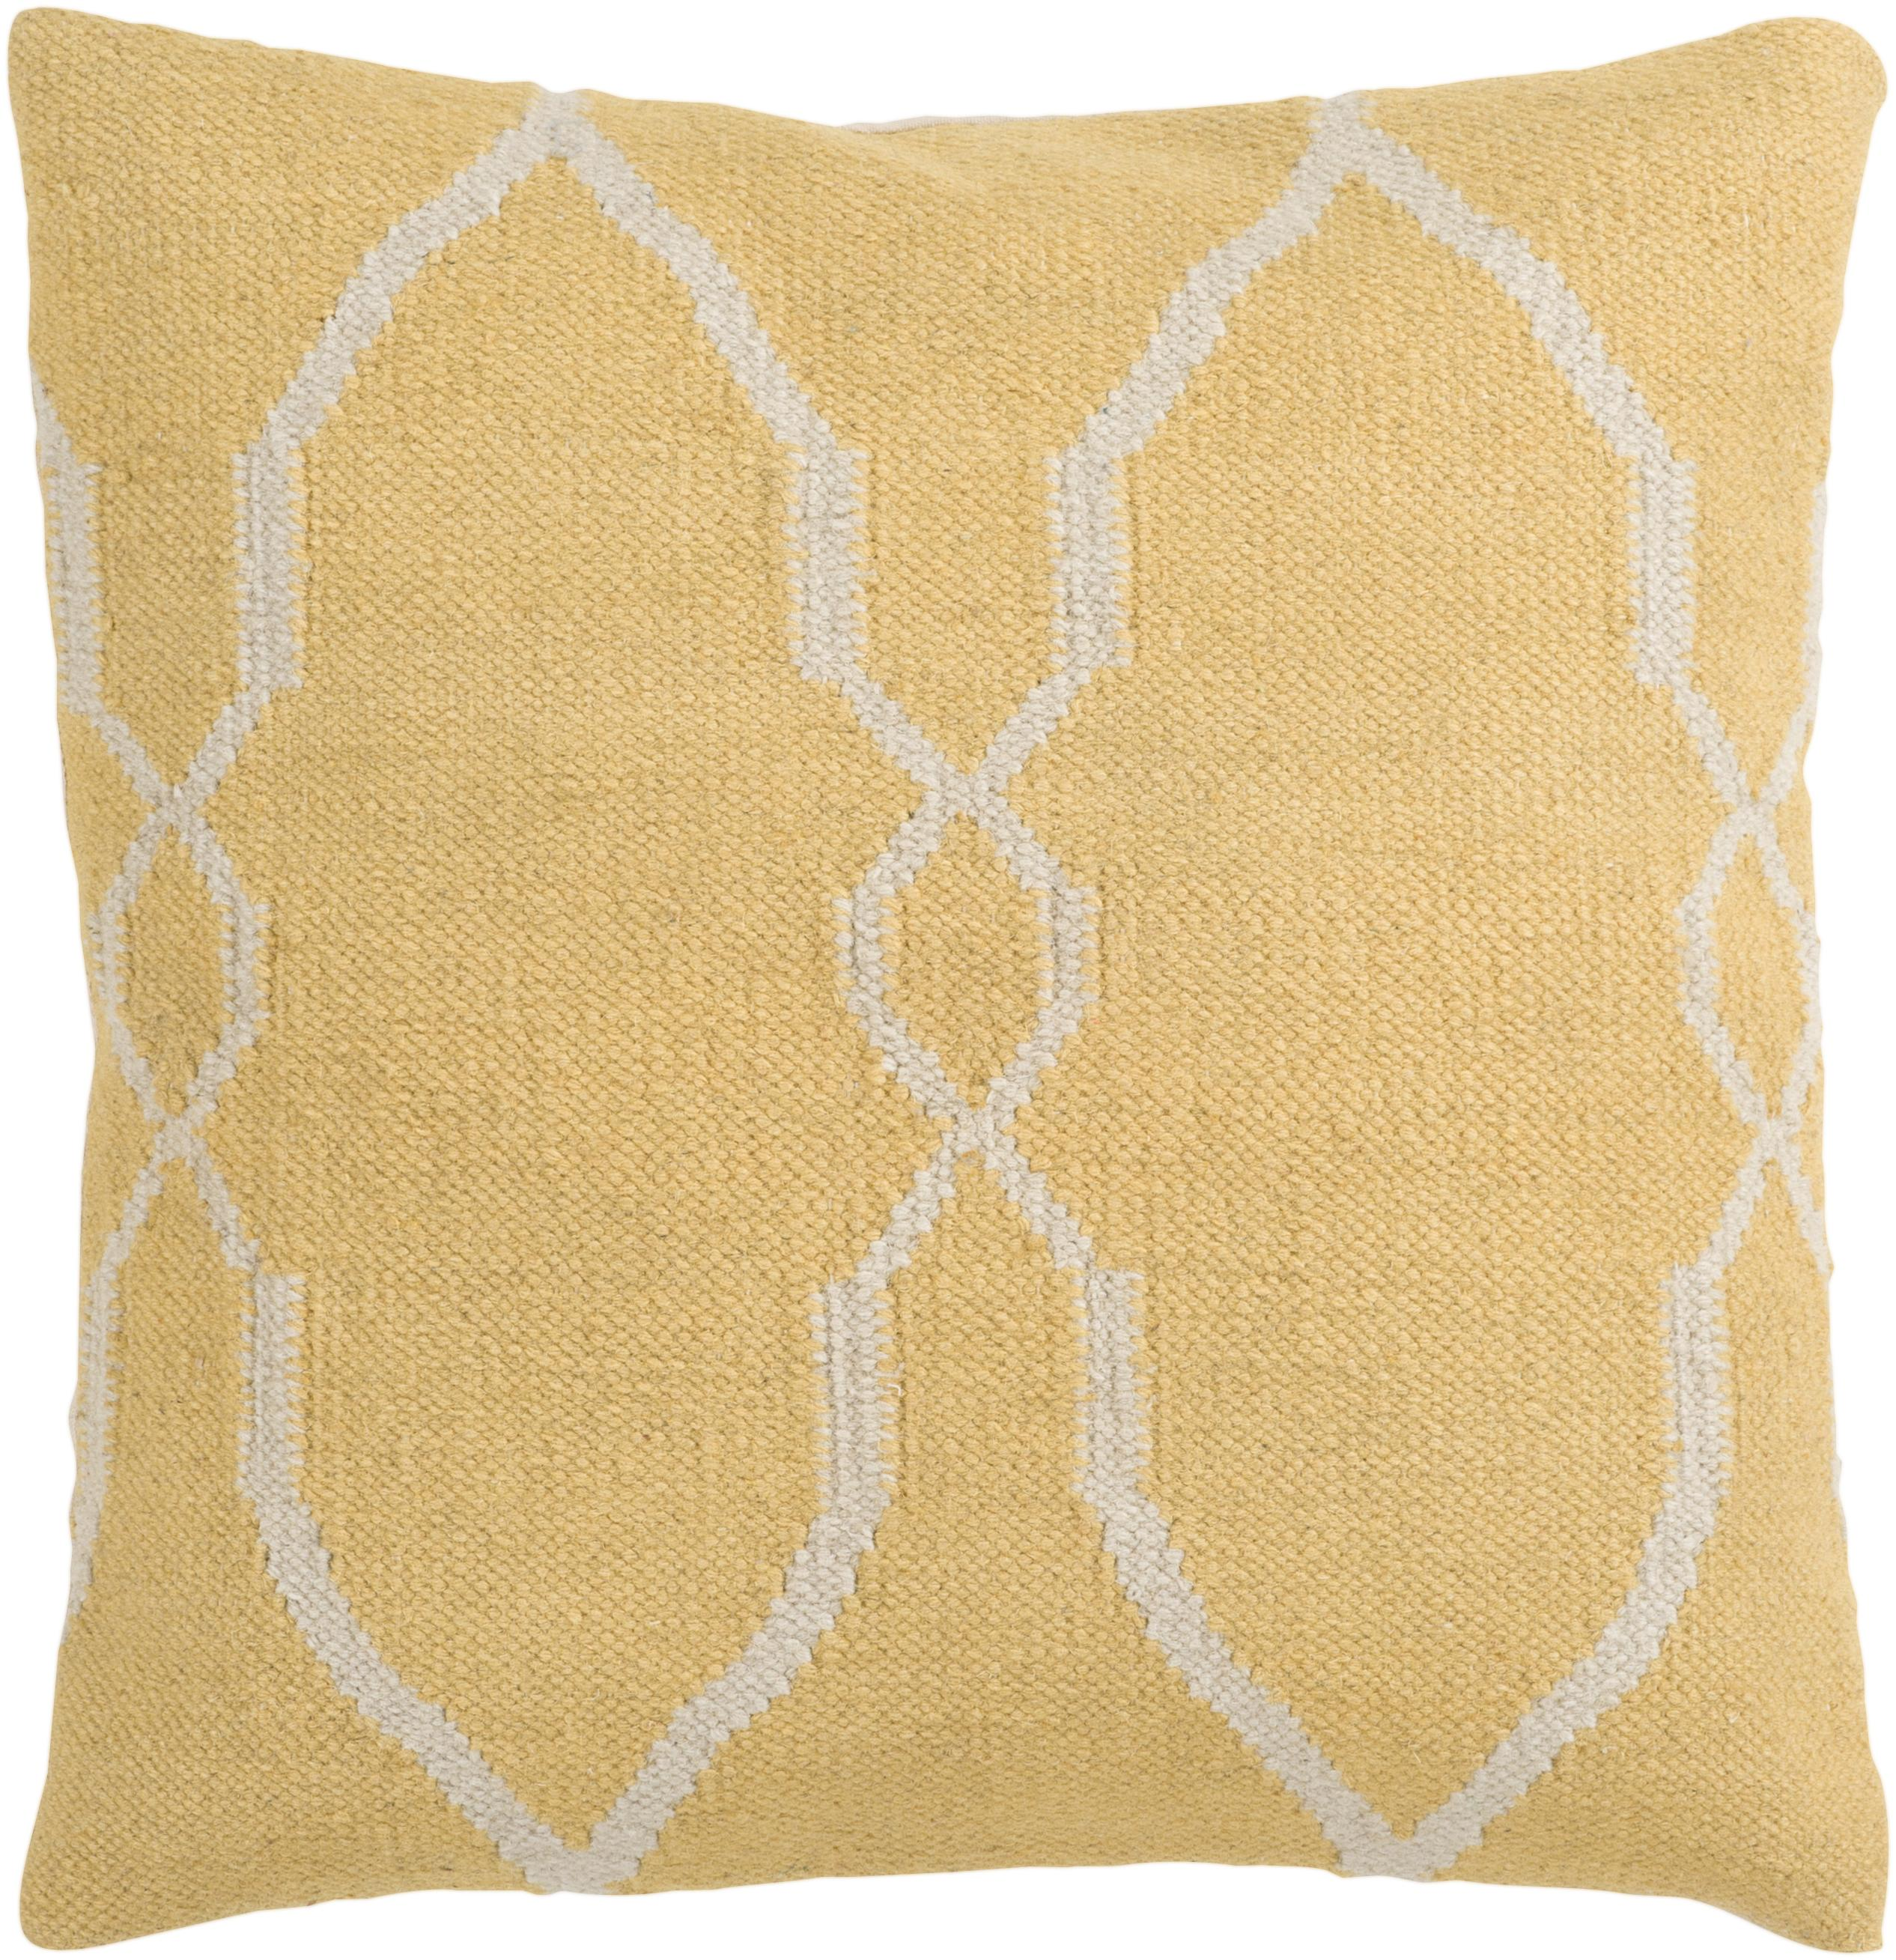 "Surya Pillows 22"" x 22"" Pillow - Item Number: FA017-2222P"